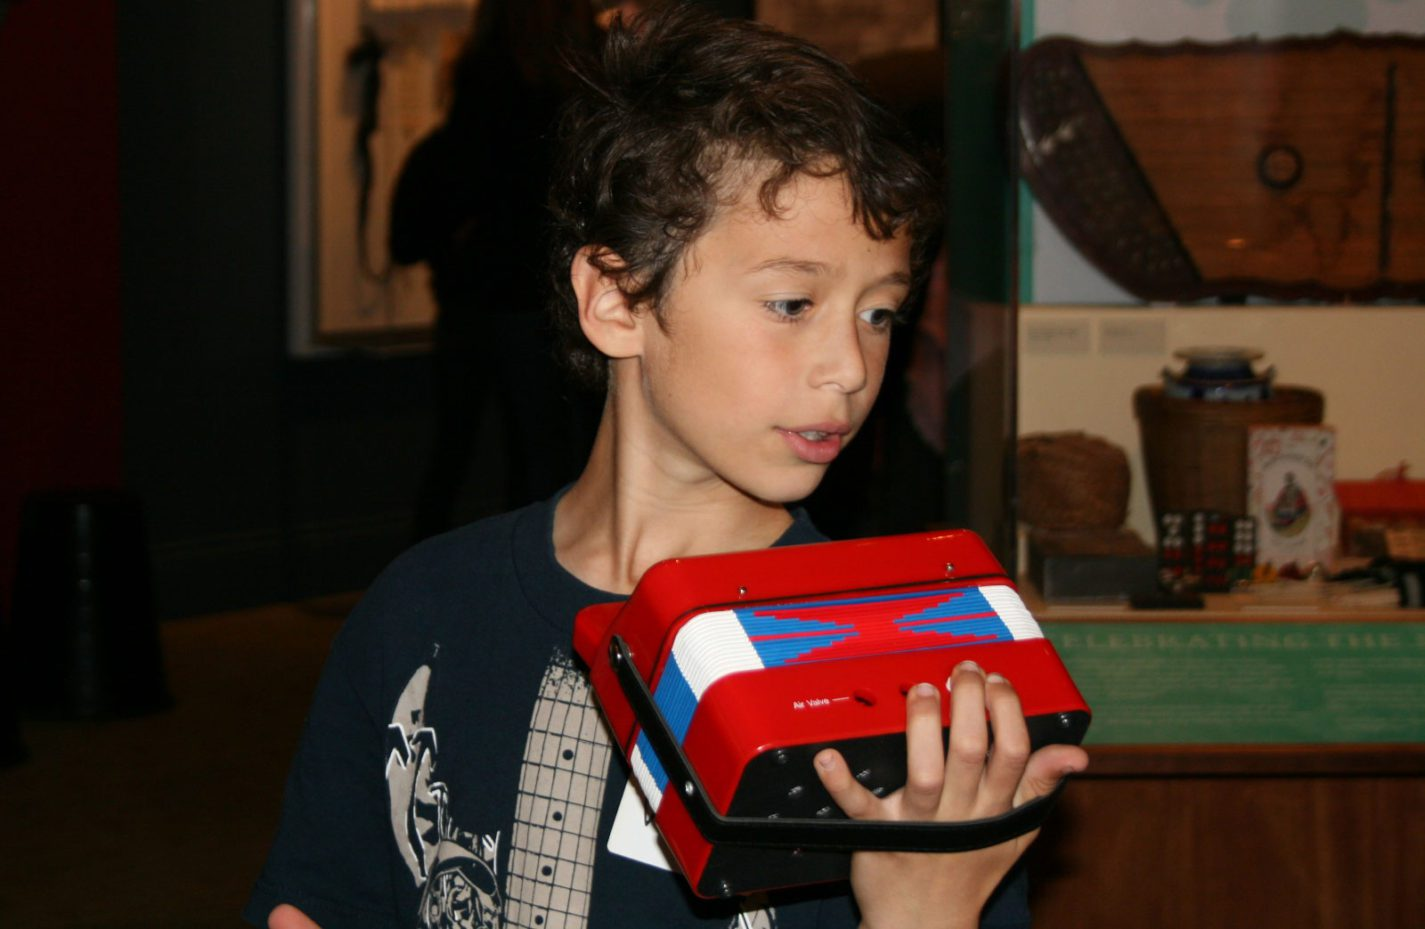 A young student plays a toy accordion at the People from Many Places exhibit at the San Mateo County History Museum